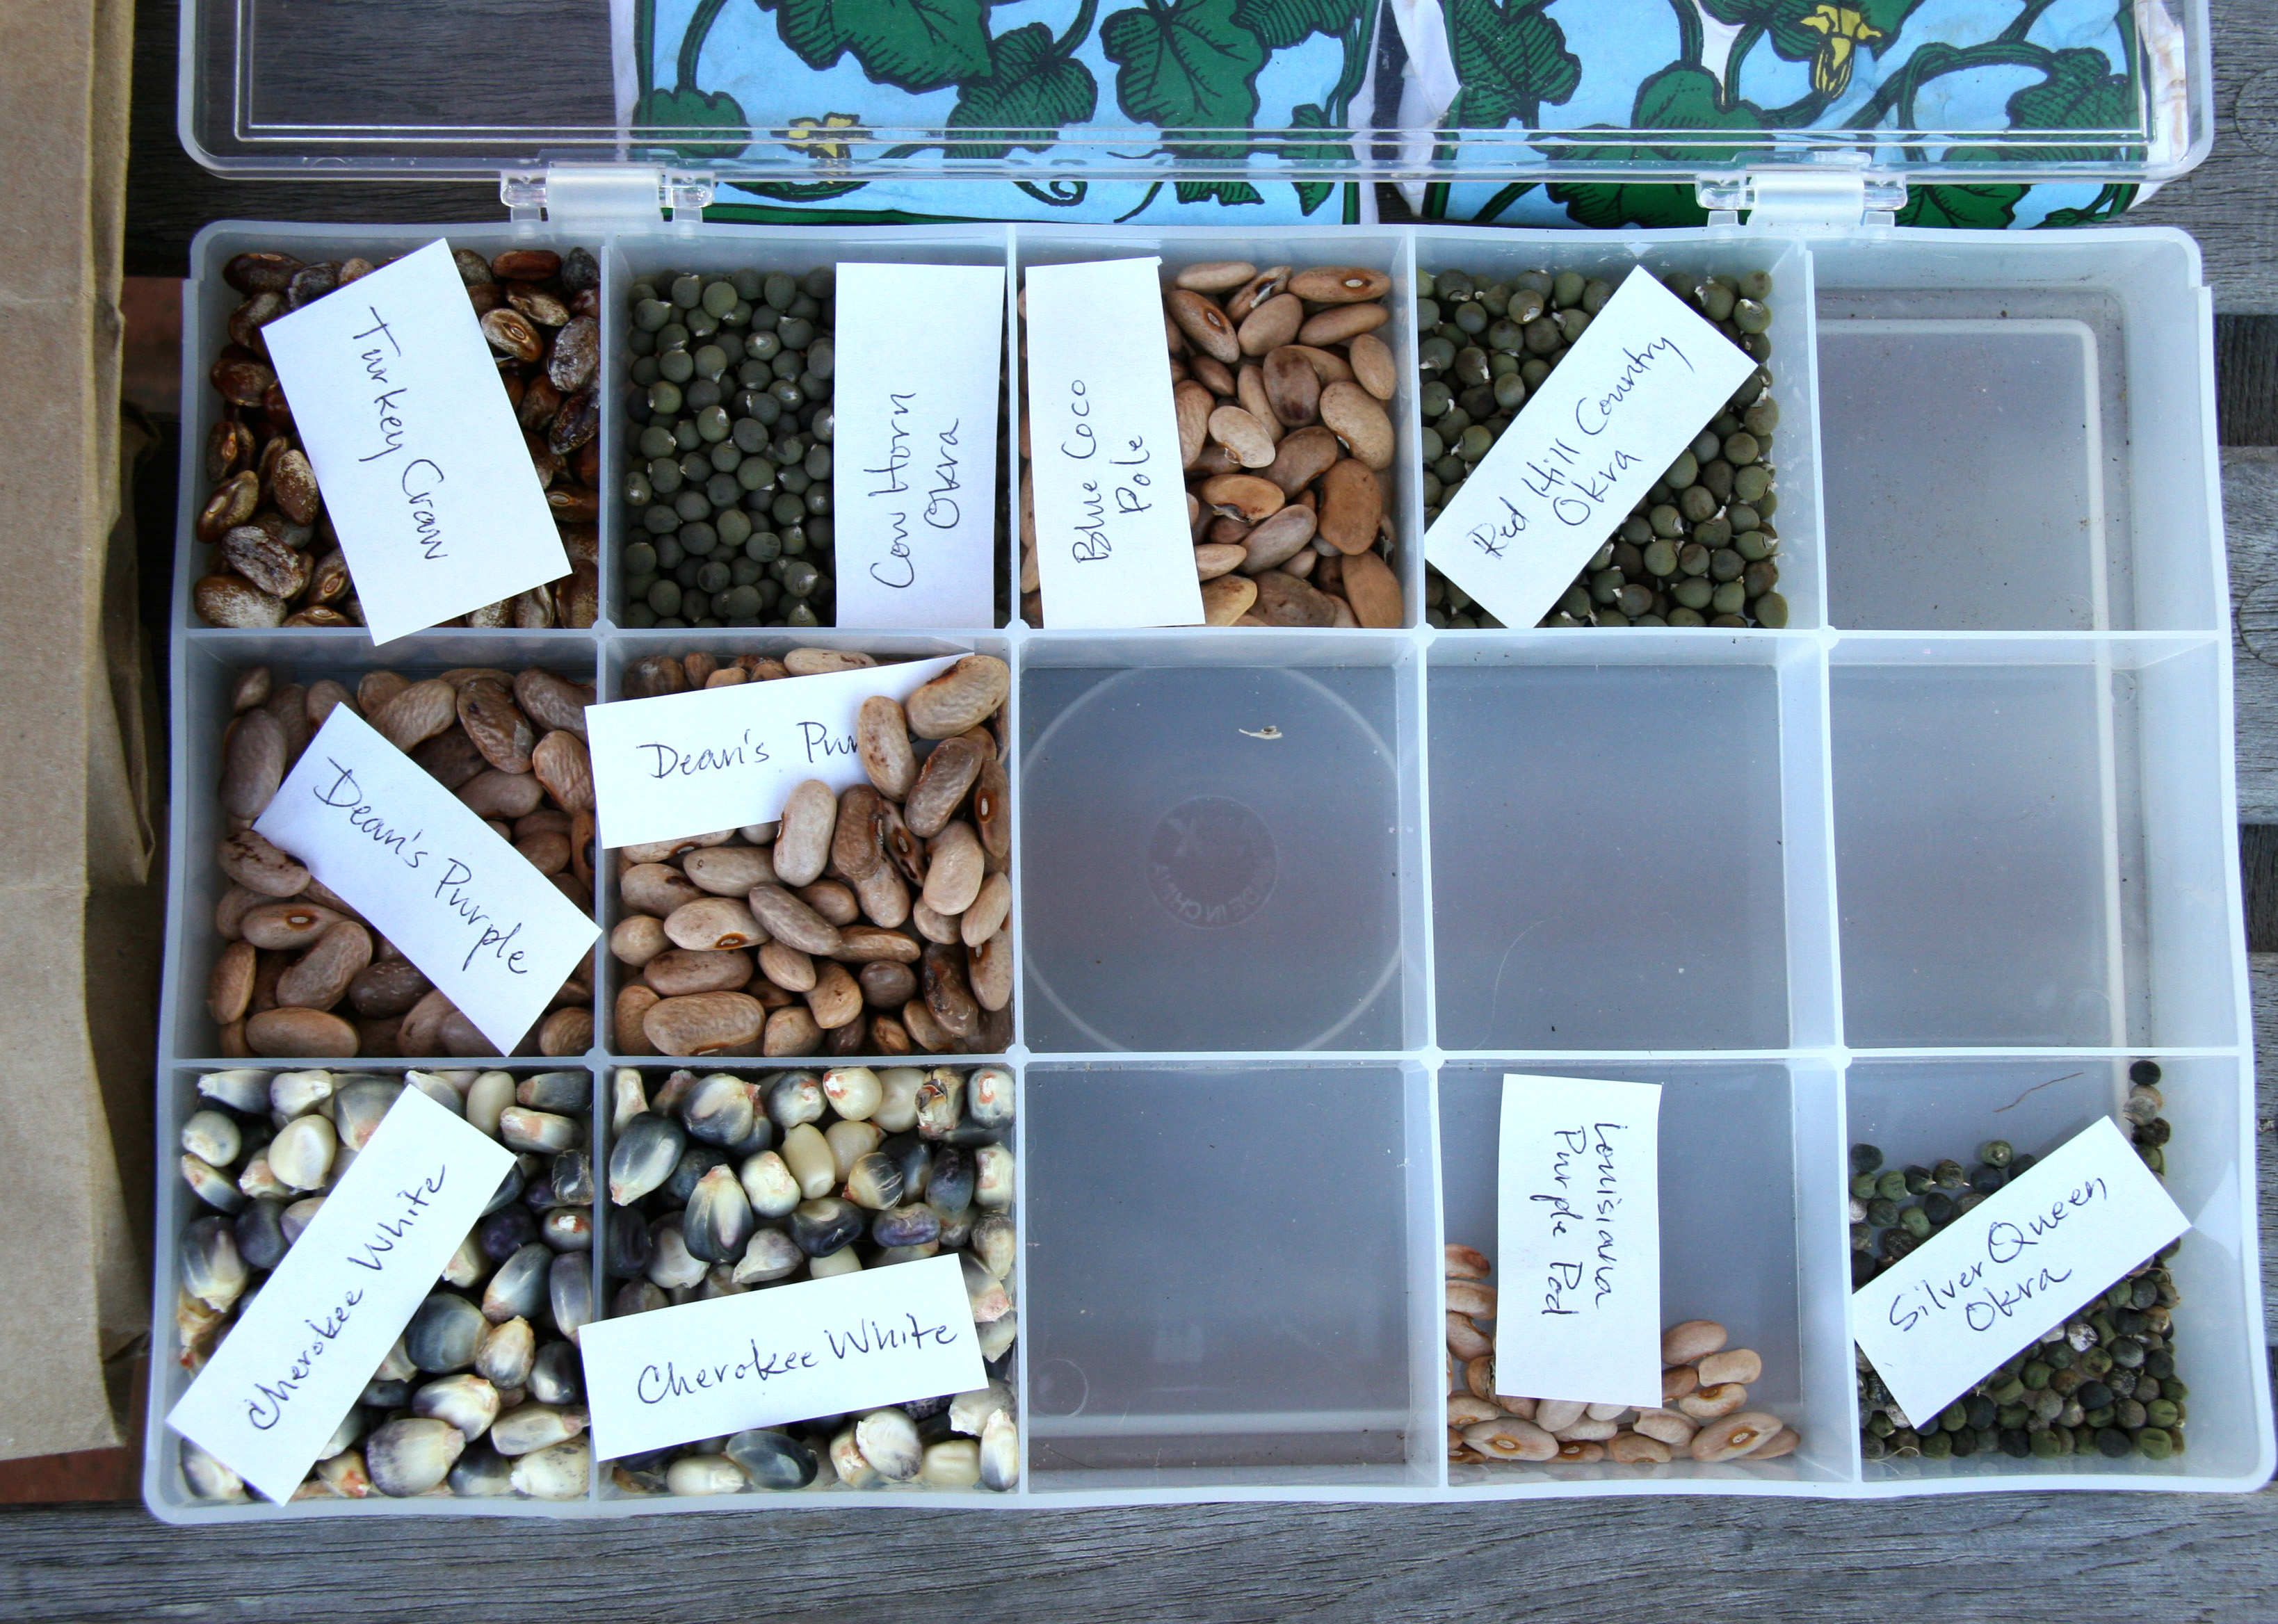 Gardeners in search of new vegetable and flower varieties to test this spring or those with a surplus of seeds should consider attending Rock Eagle 4-H Center's annual seed swap. The Rock Eagle 4-H Center in Eatonton, Georgia, will host this year's seed swap on Saturday, March 17, as part of the Saturday @ the Rock event series.